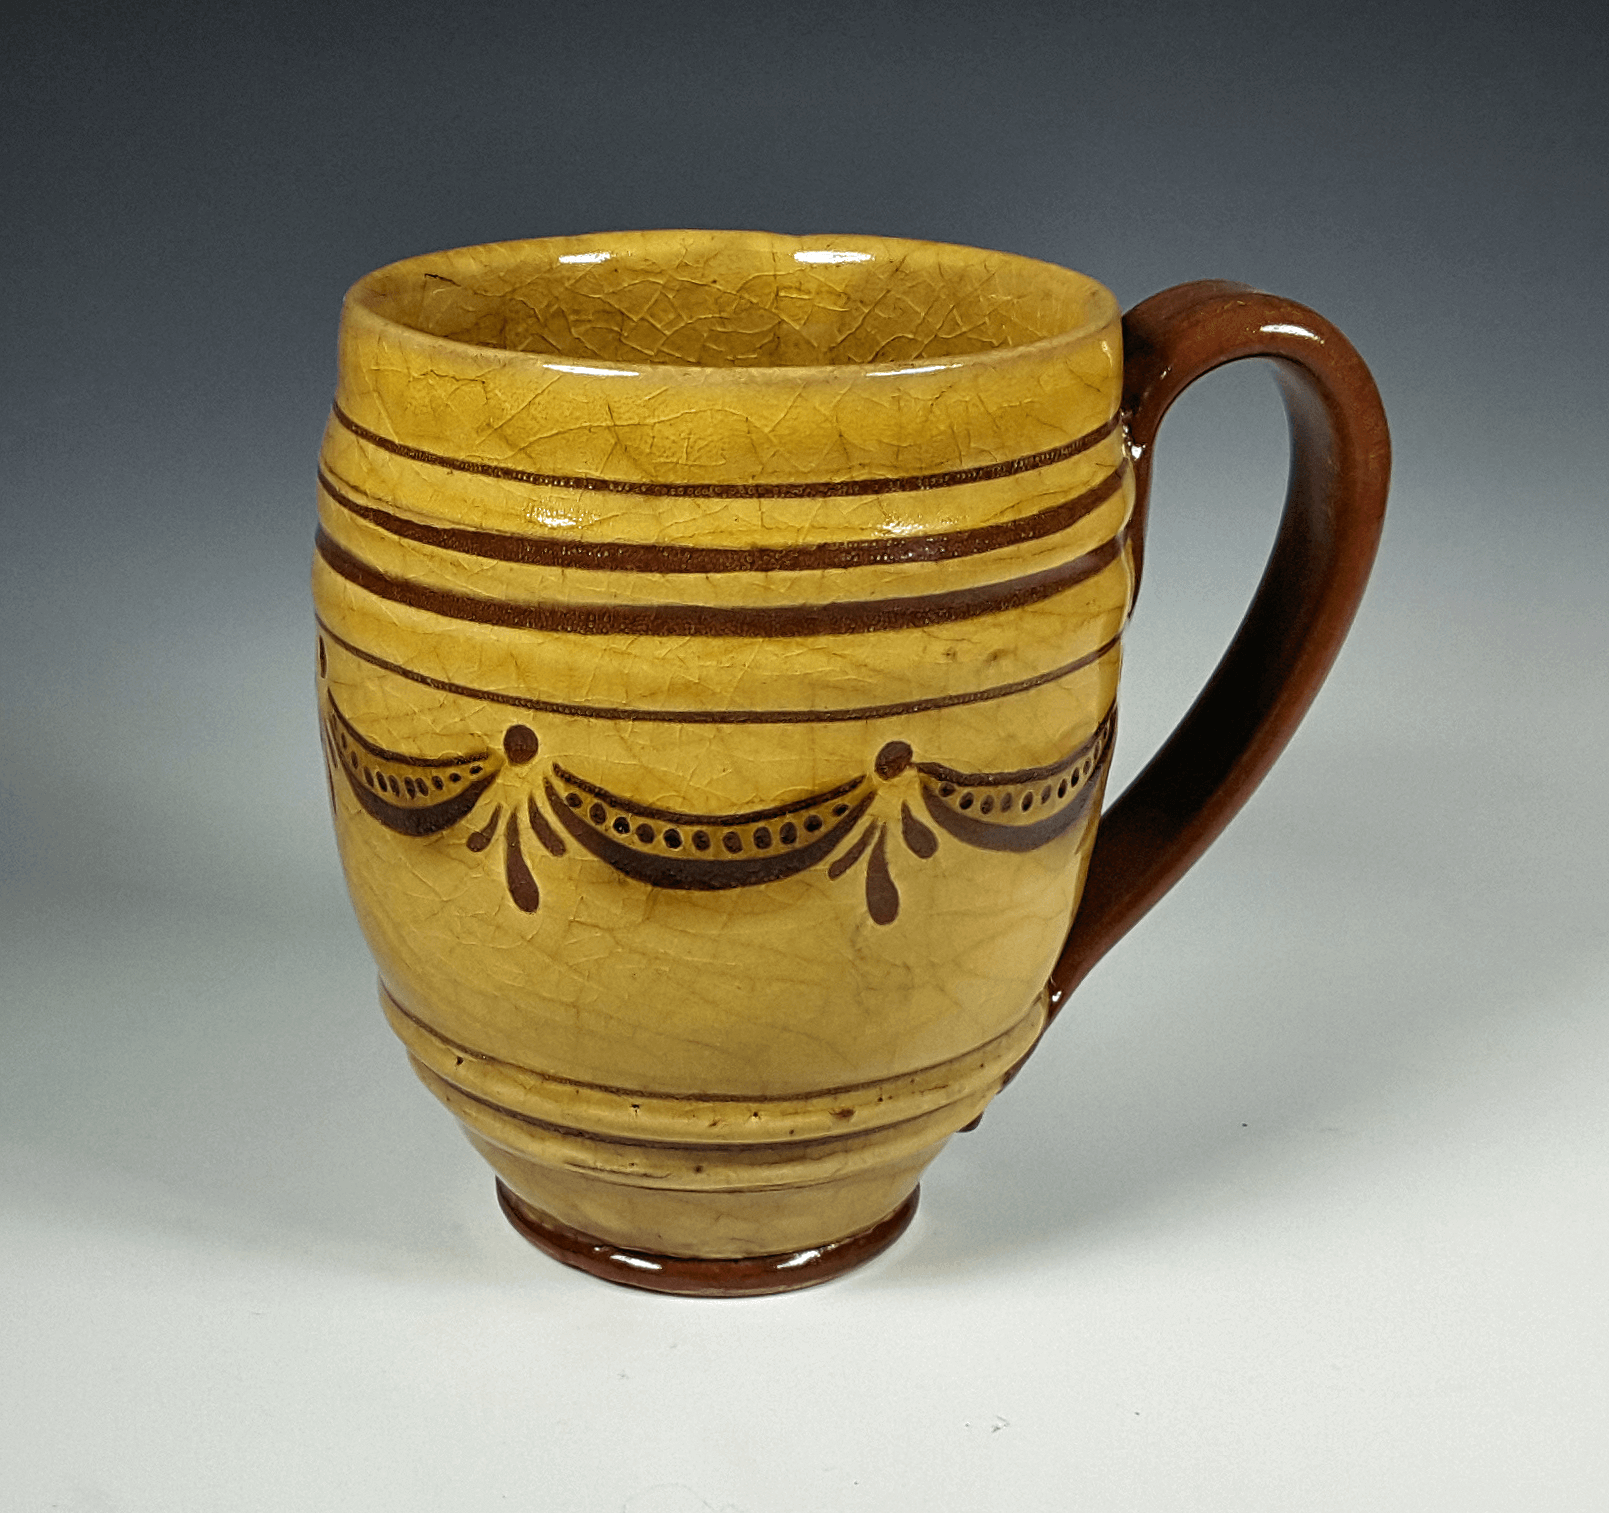 Barrel Mug, Sgraffito, Swag